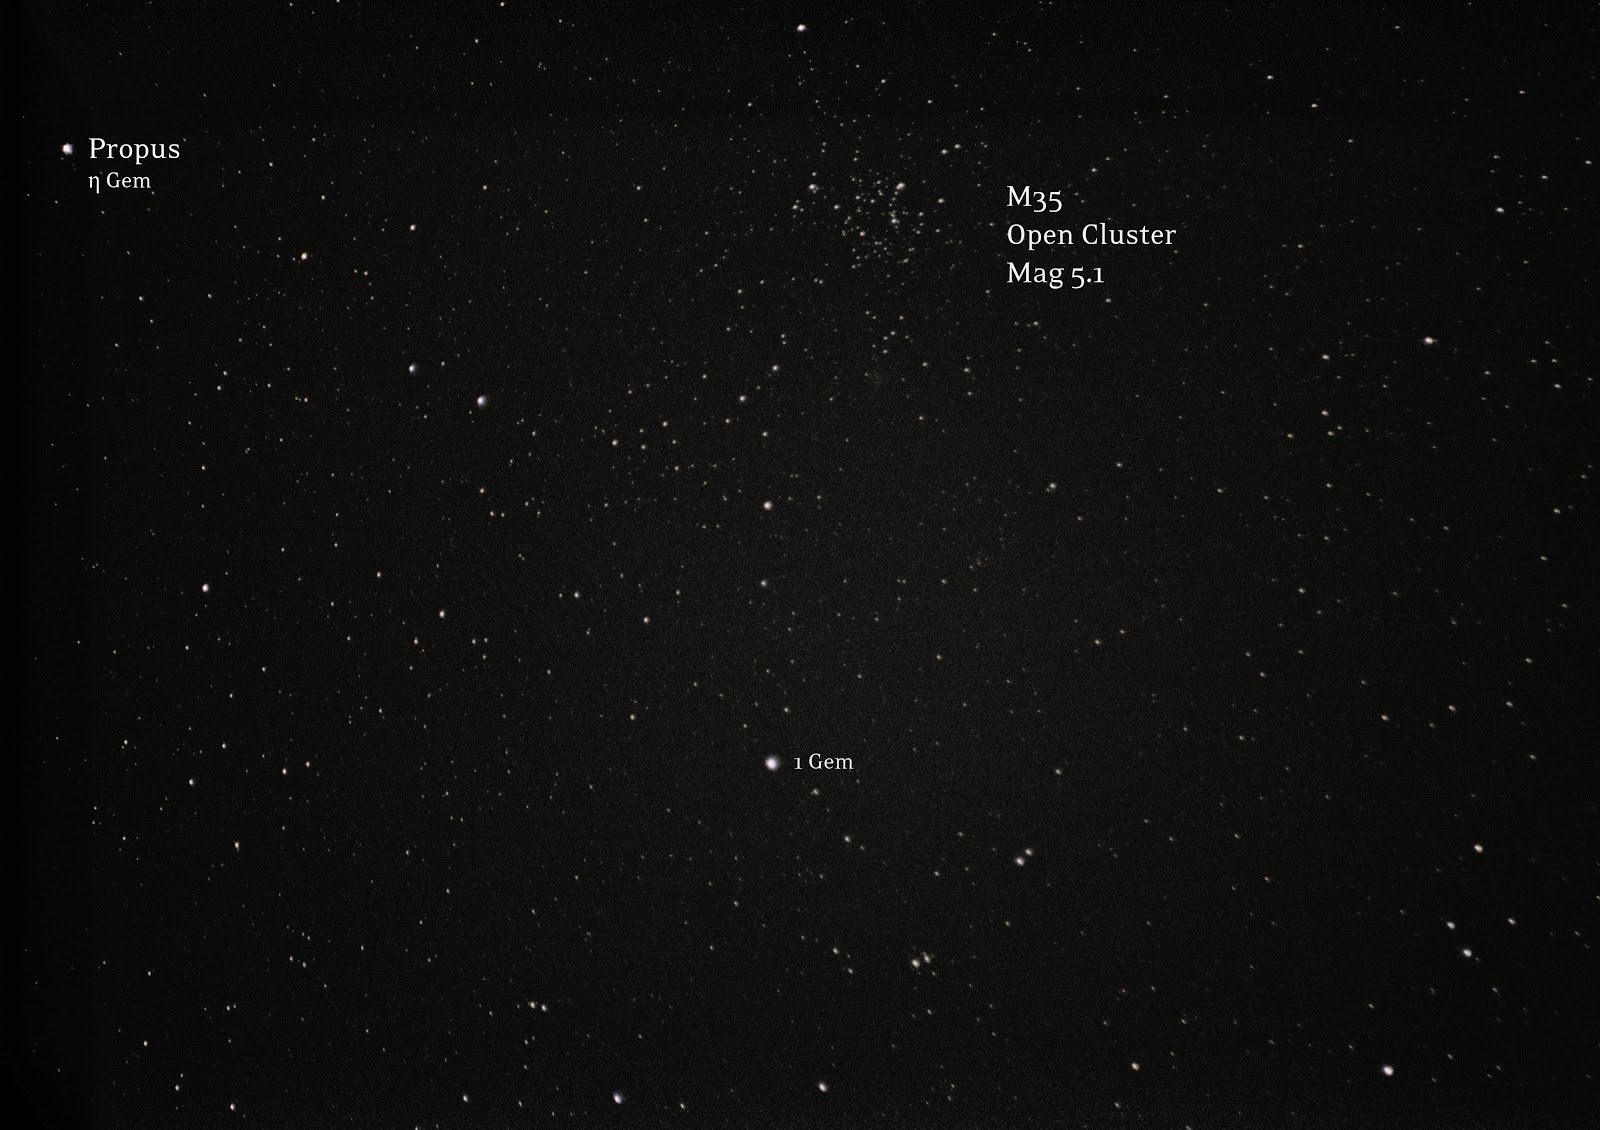 M35, open cluster in Gemini